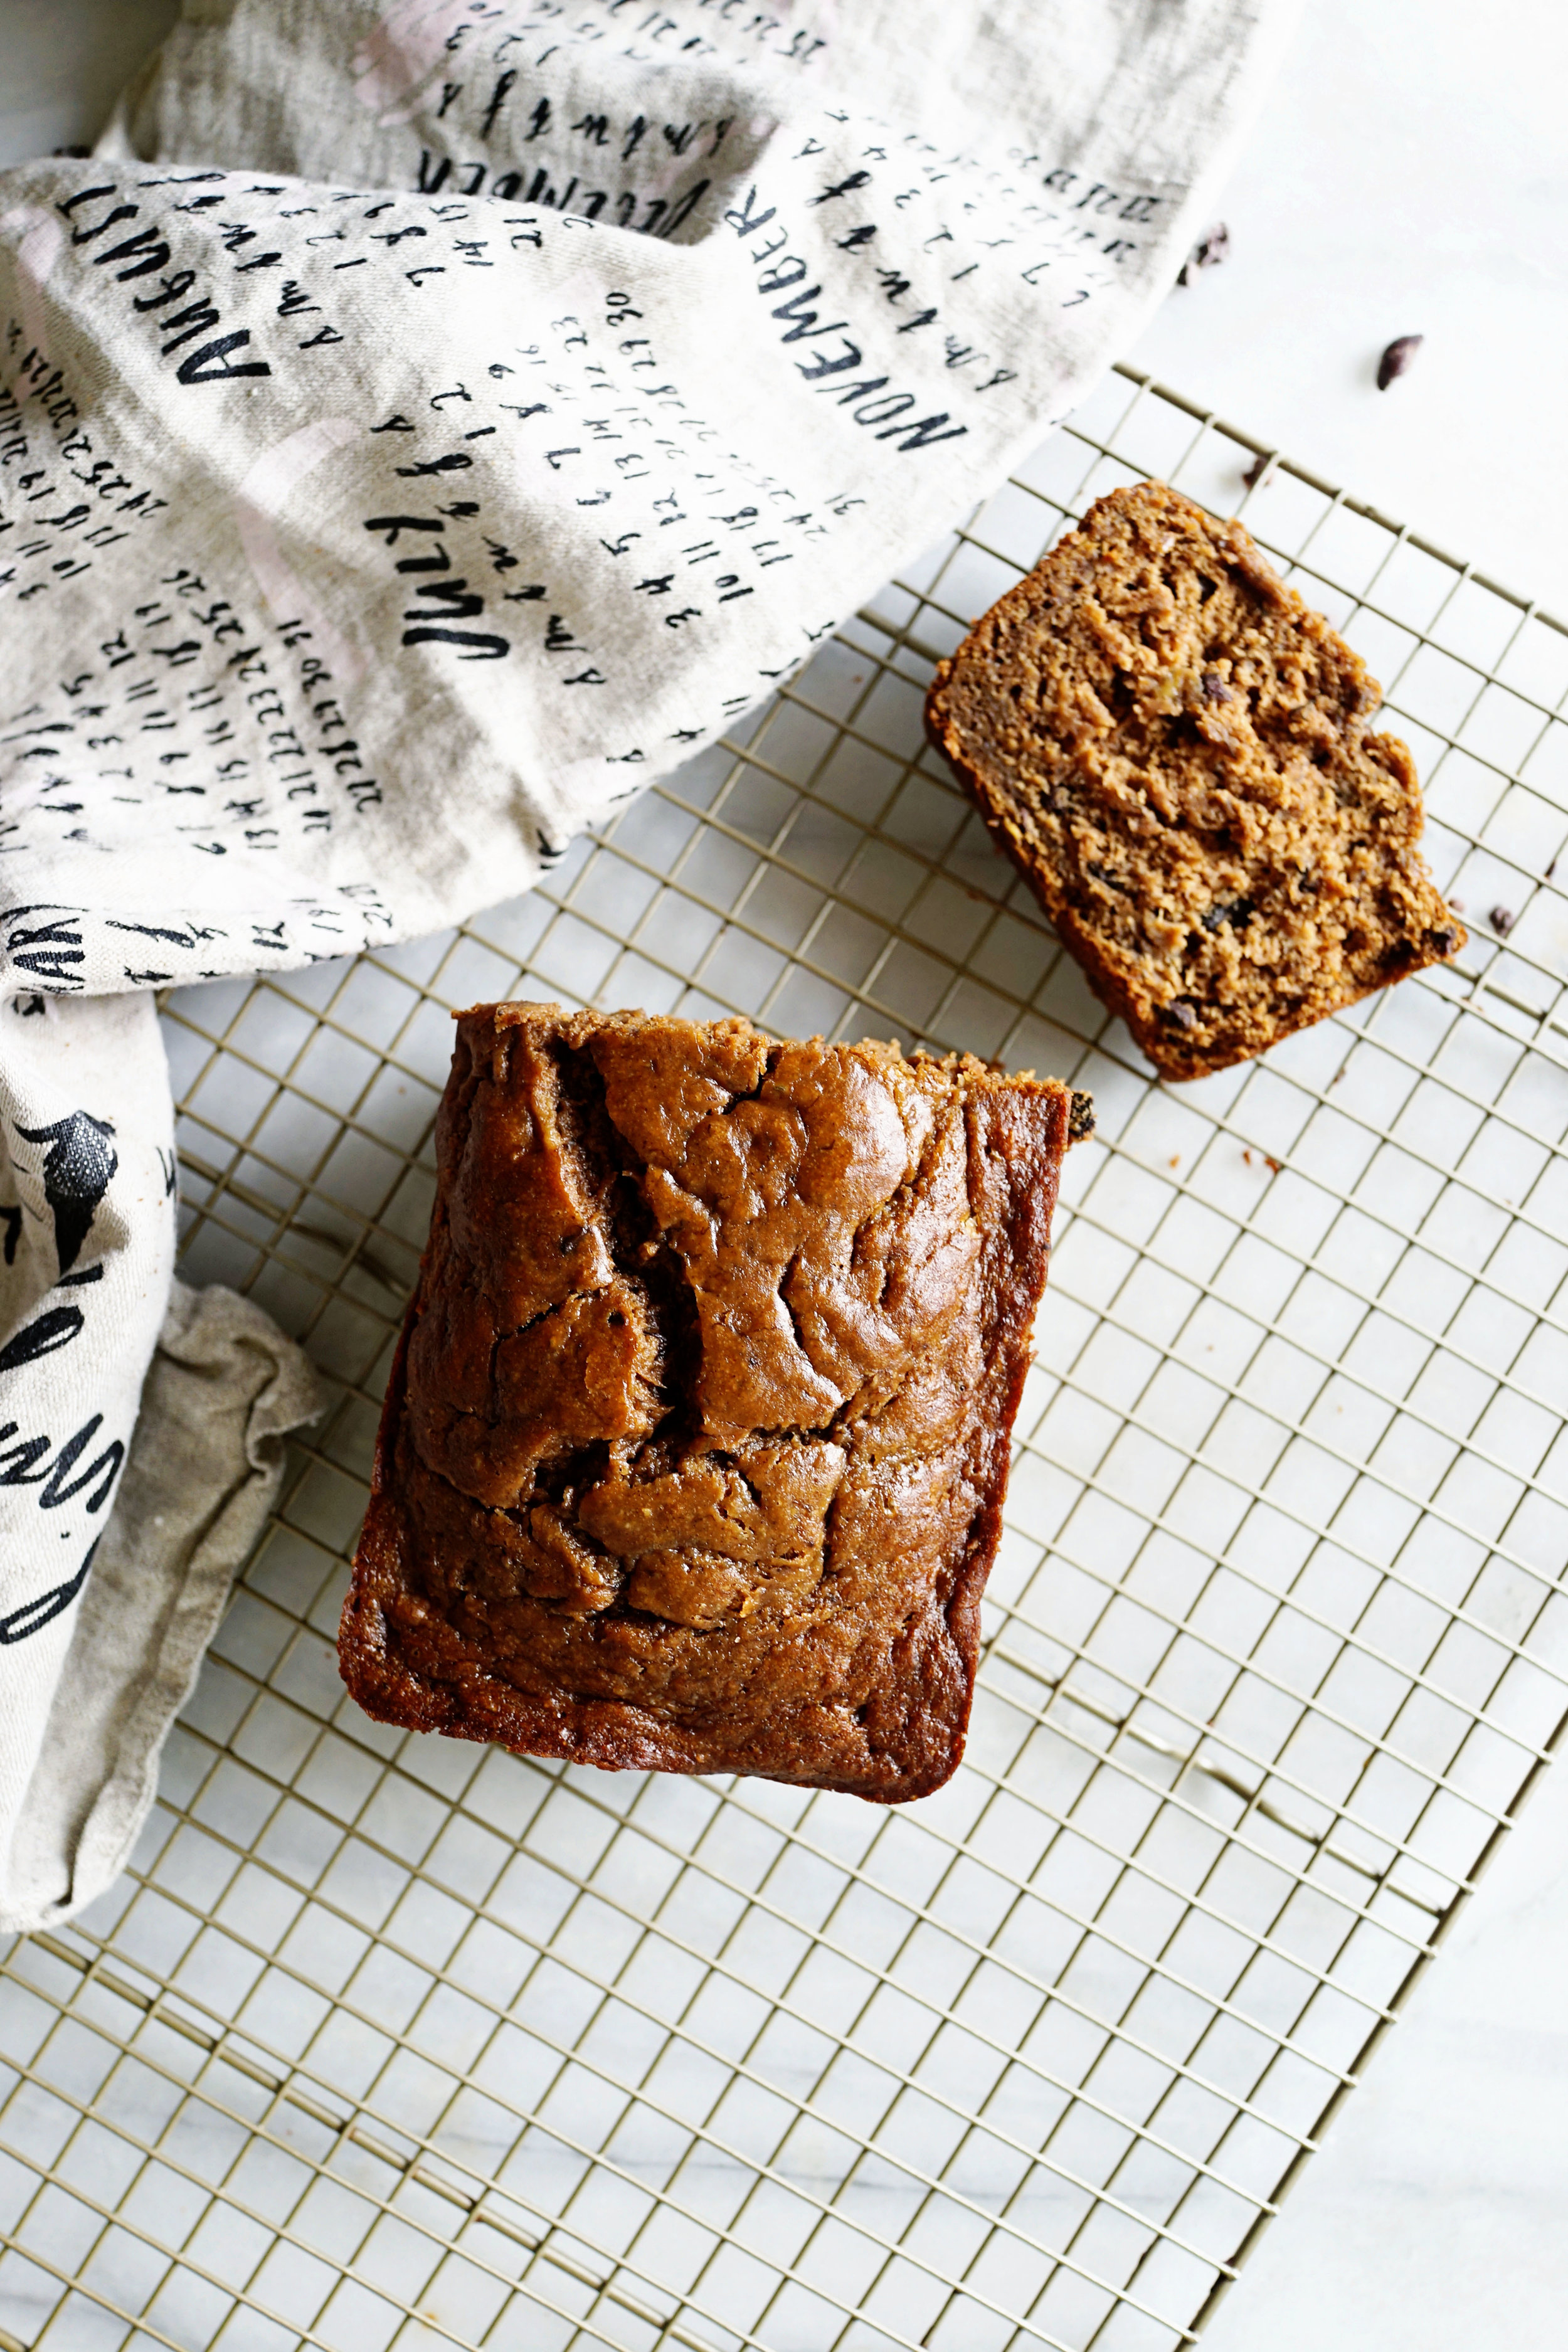 Recipe: Gluten Free Chocolate Banana Bread  /  www.goodonpaperdesign.com/blog/2016/9/8/recipe-gluten-free-chocolate-banana-bread  /  @good_on_paper